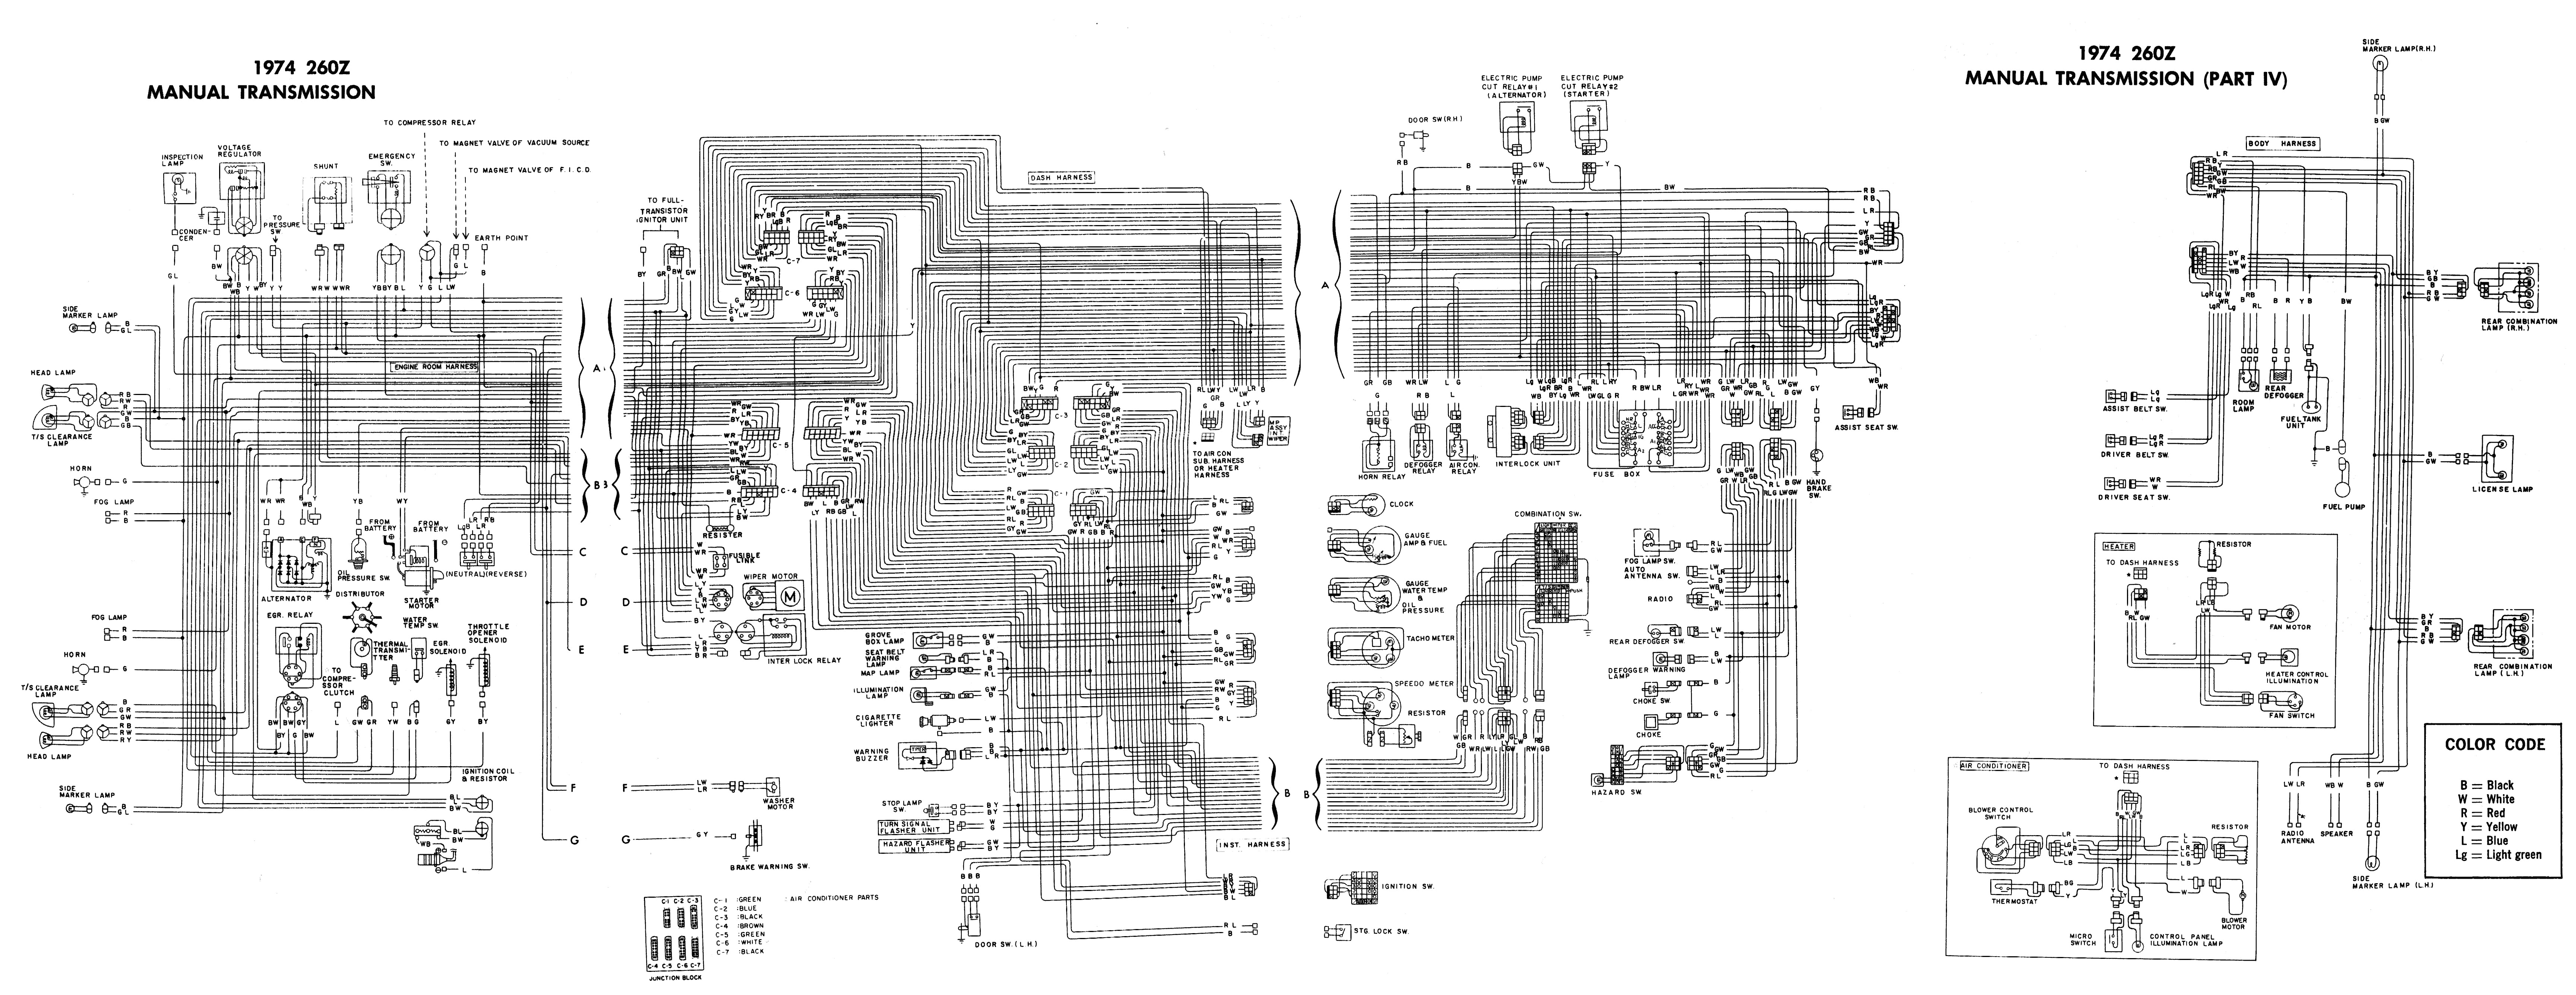 80 280zx harness pinout diagram wiring diagram inside 80 280zx harness pinout diagram